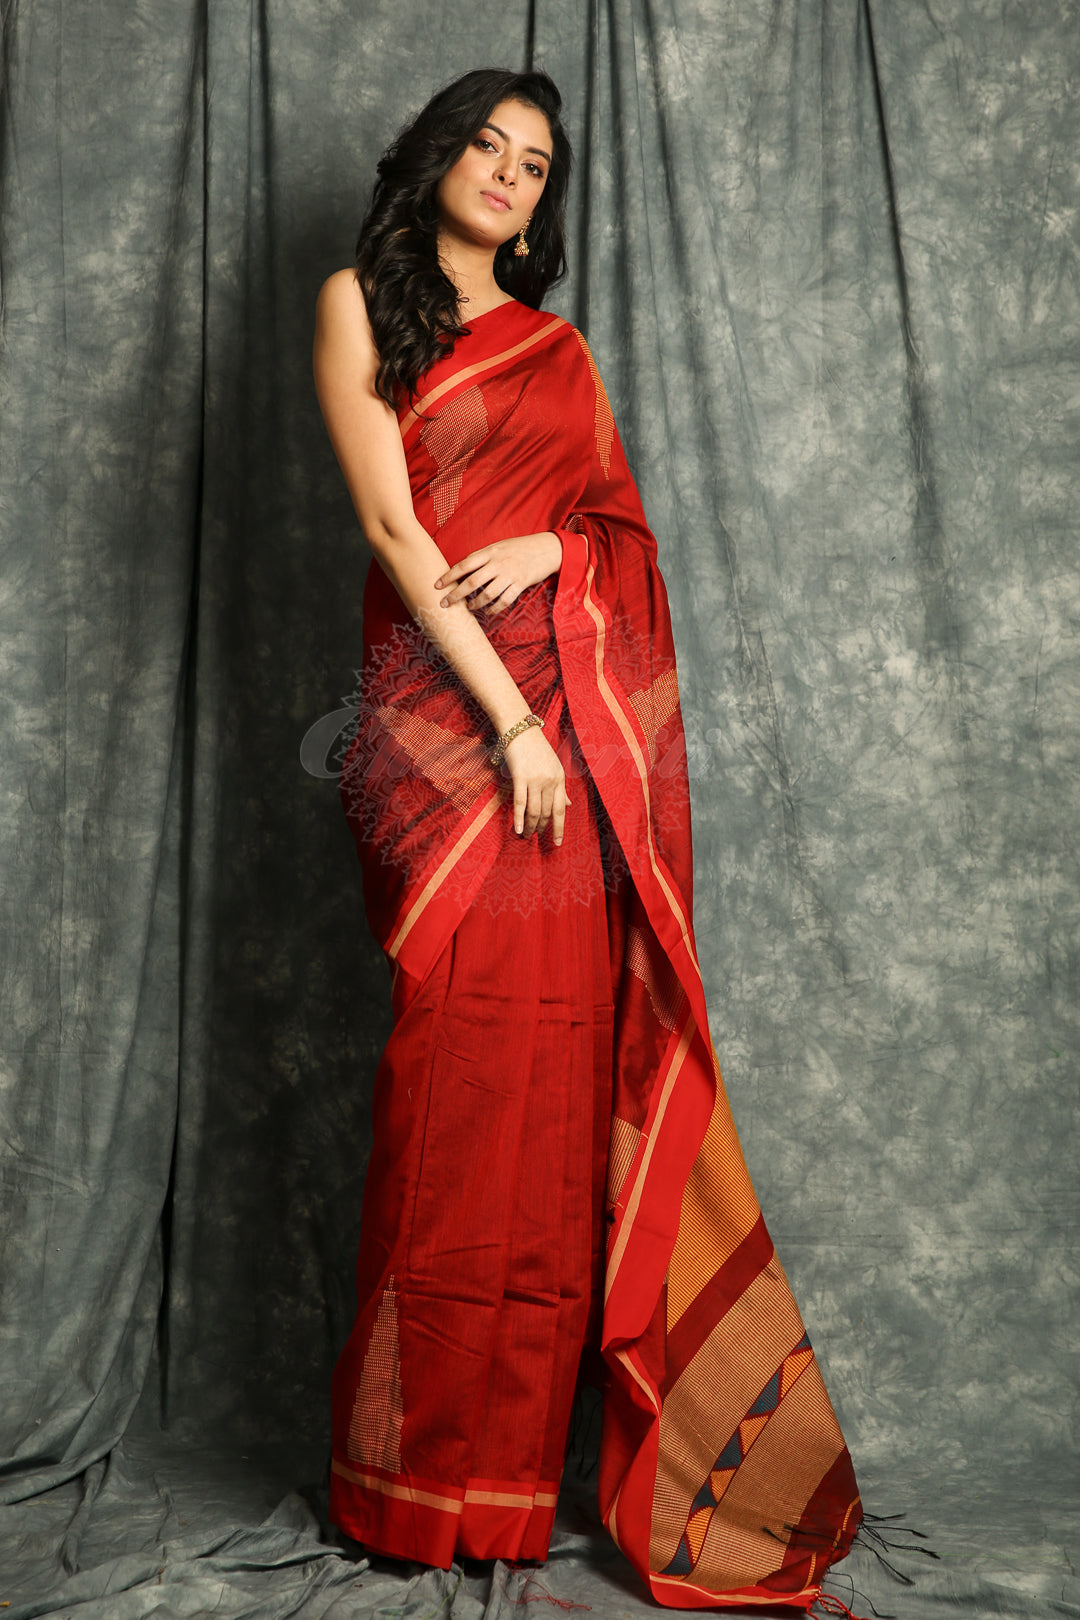 Red Temple Design Handloom Saree With Geometric Weaving Pallu